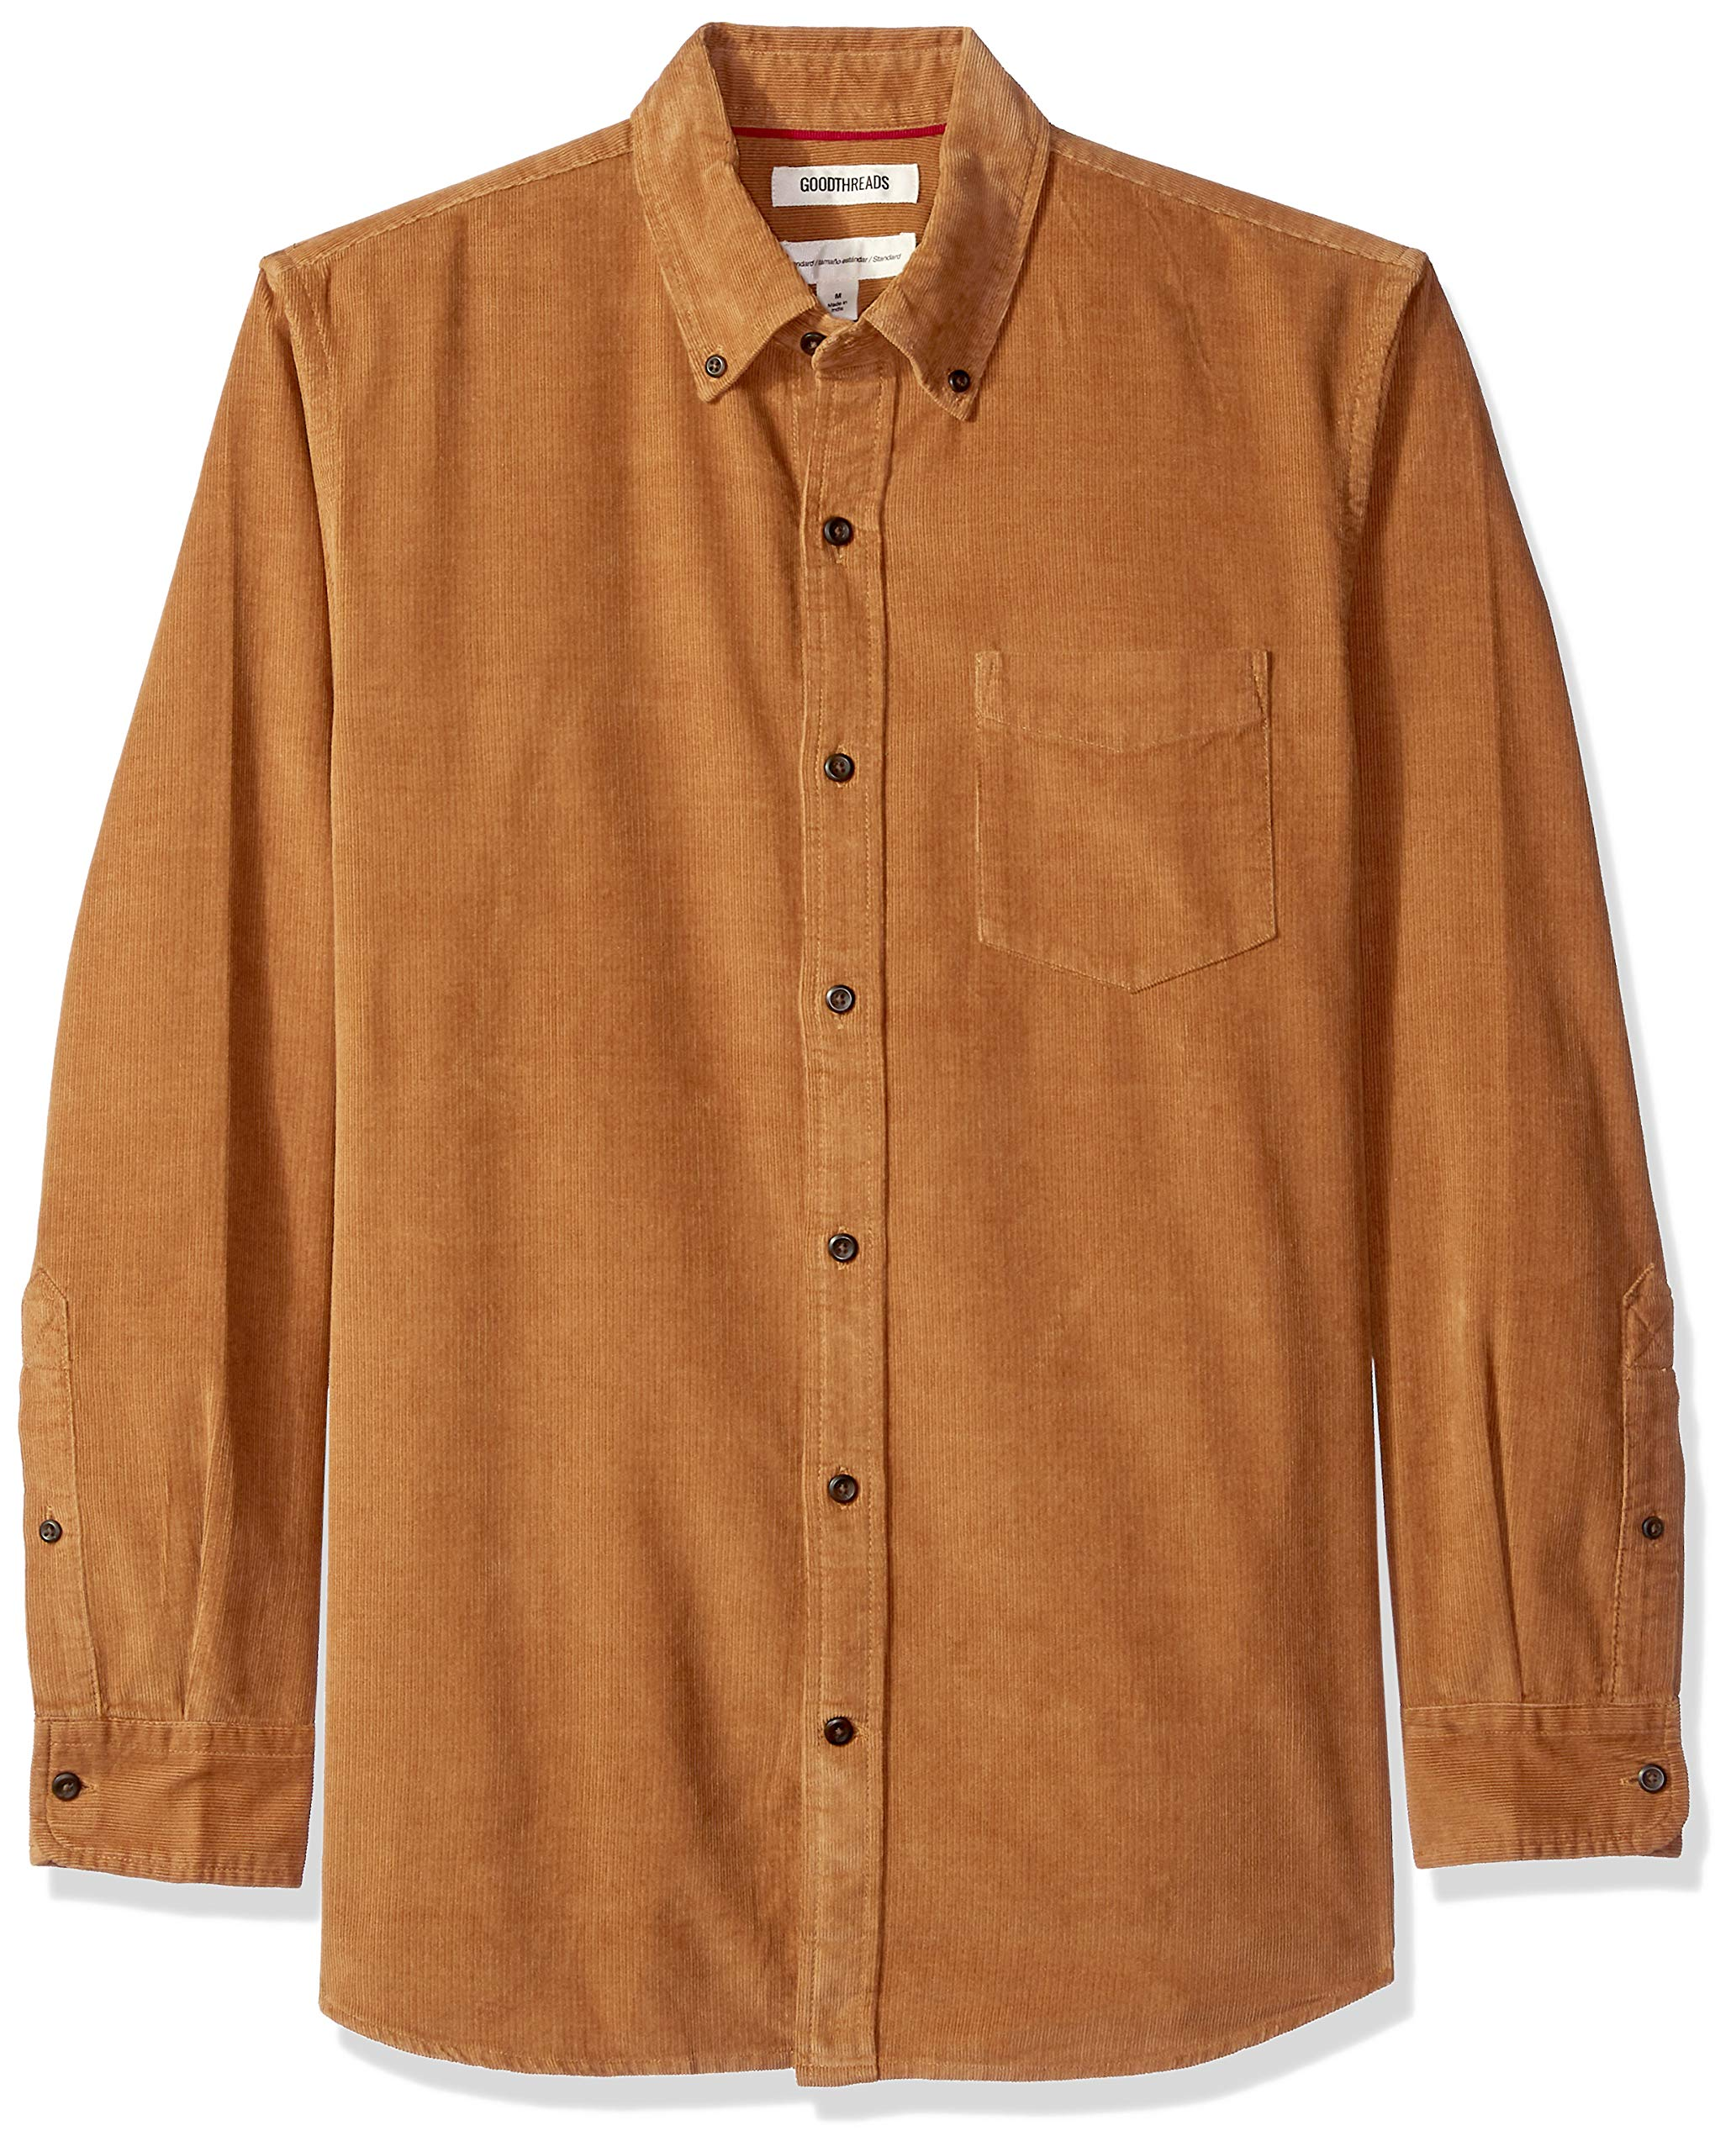 Brand Goodthreads Mens Standard-Fit Long-Sleeve Corduroy Shirt